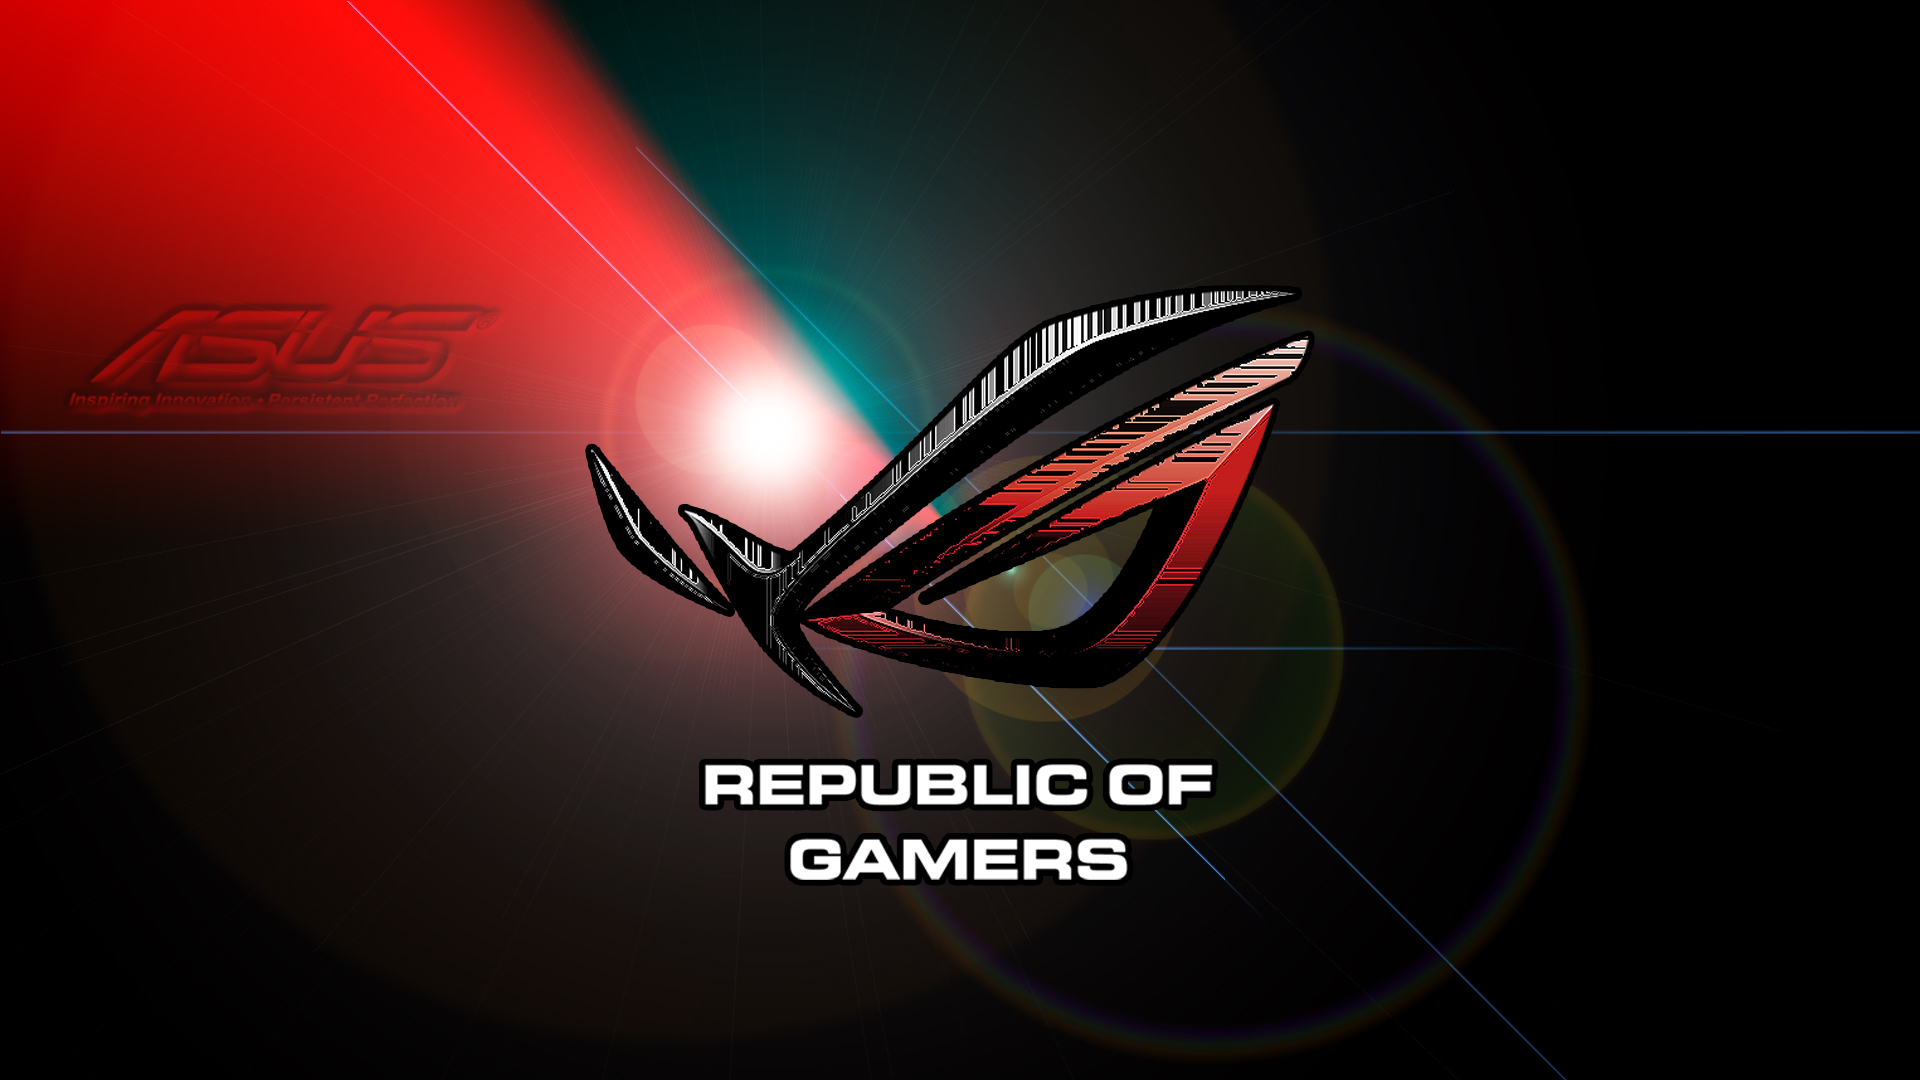 Wallpaperwiki Wallpapers Asus Rog Hd Pic Wpc0011079 Wallpaperwiki